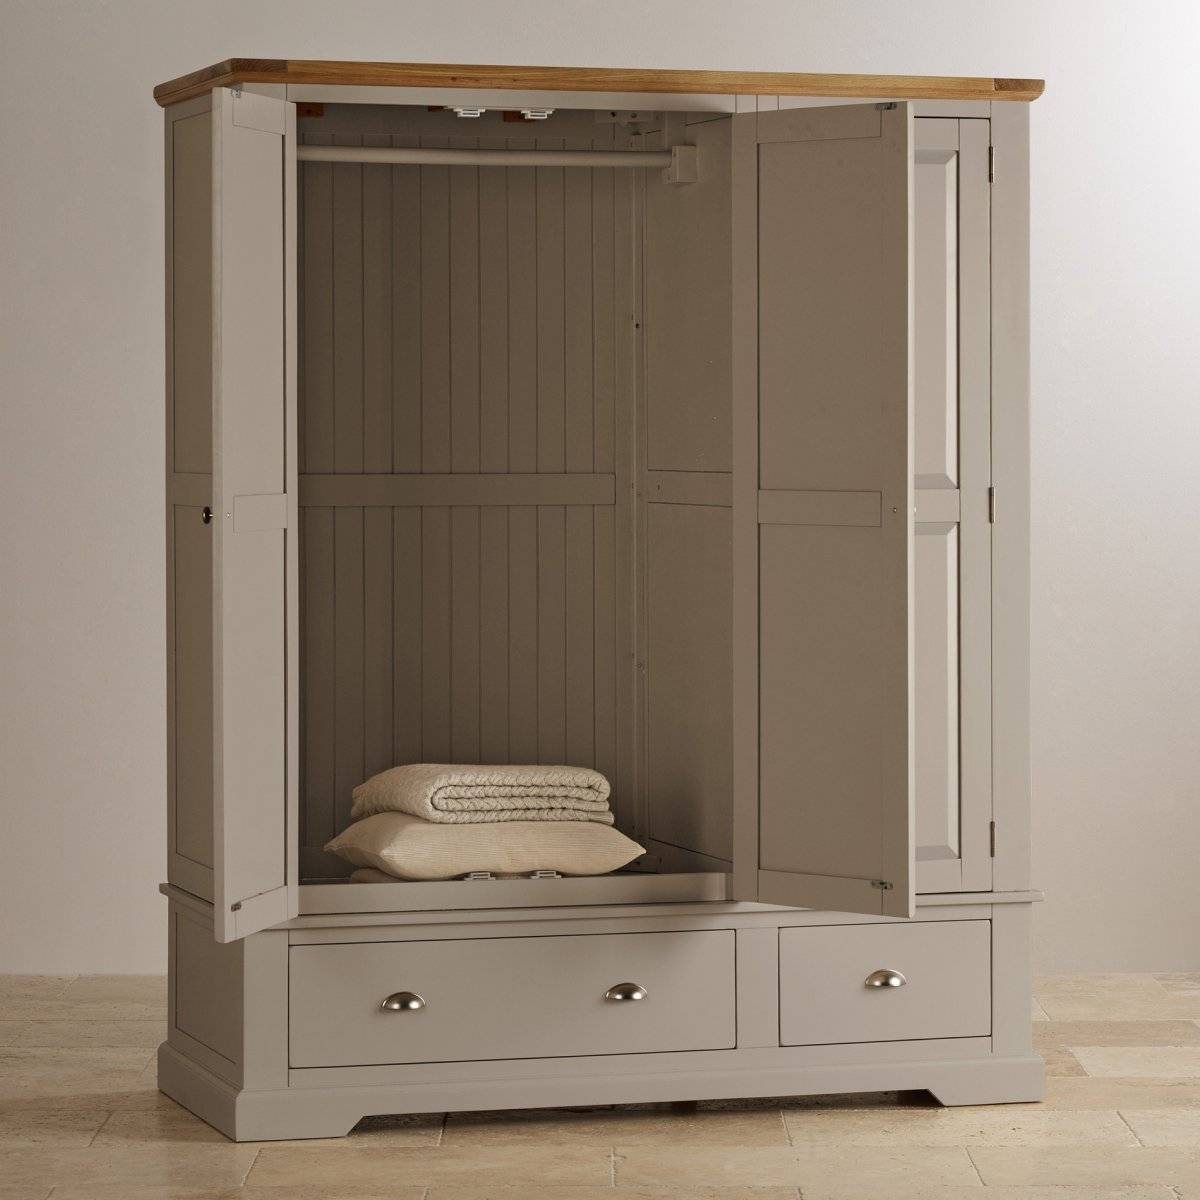 St Ives Grey Painted Triple Wardrobe In Natural Oak with regard to Painted Triple Wardrobes (Image 14 of 15)